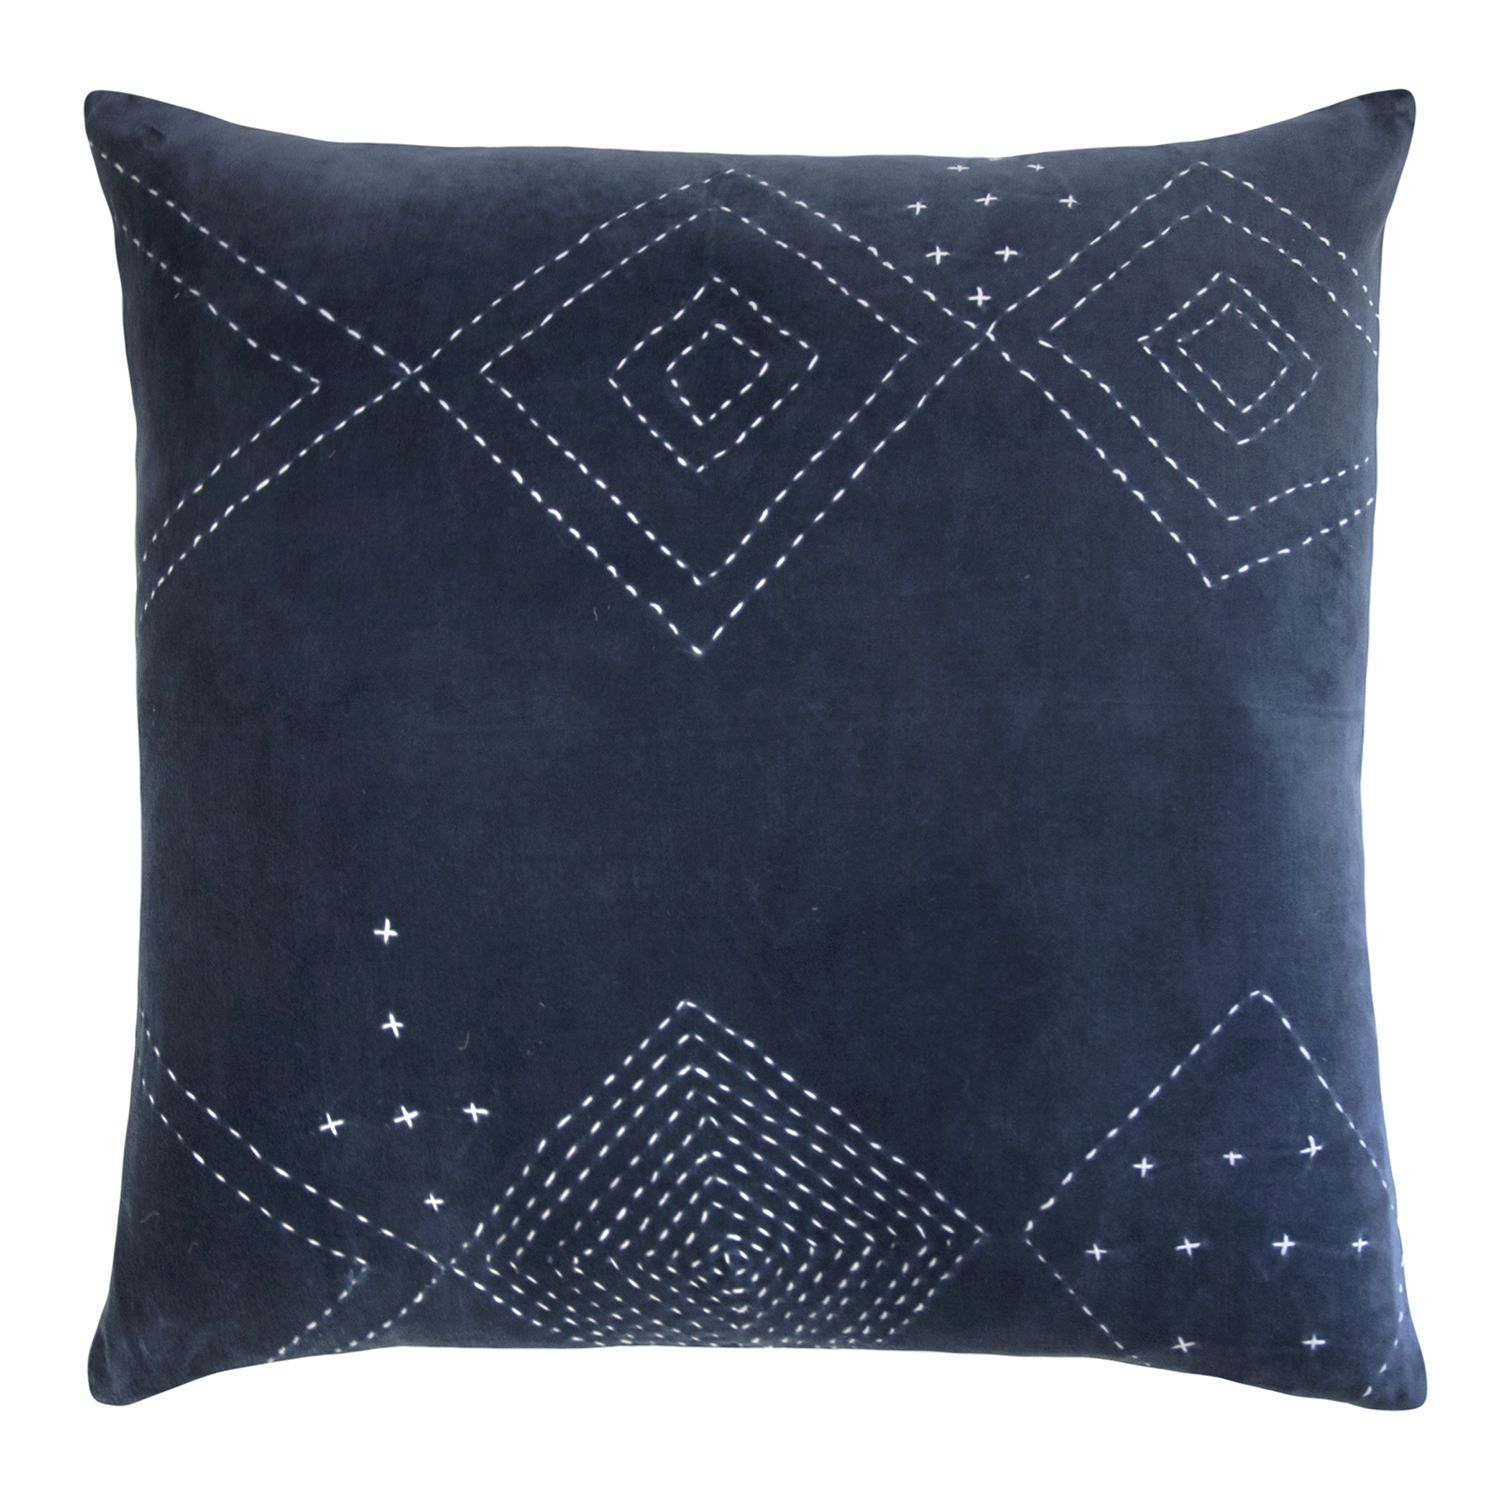 Kevin OBrien Diamond Stitch Cotton Velvet Decorative Pillow